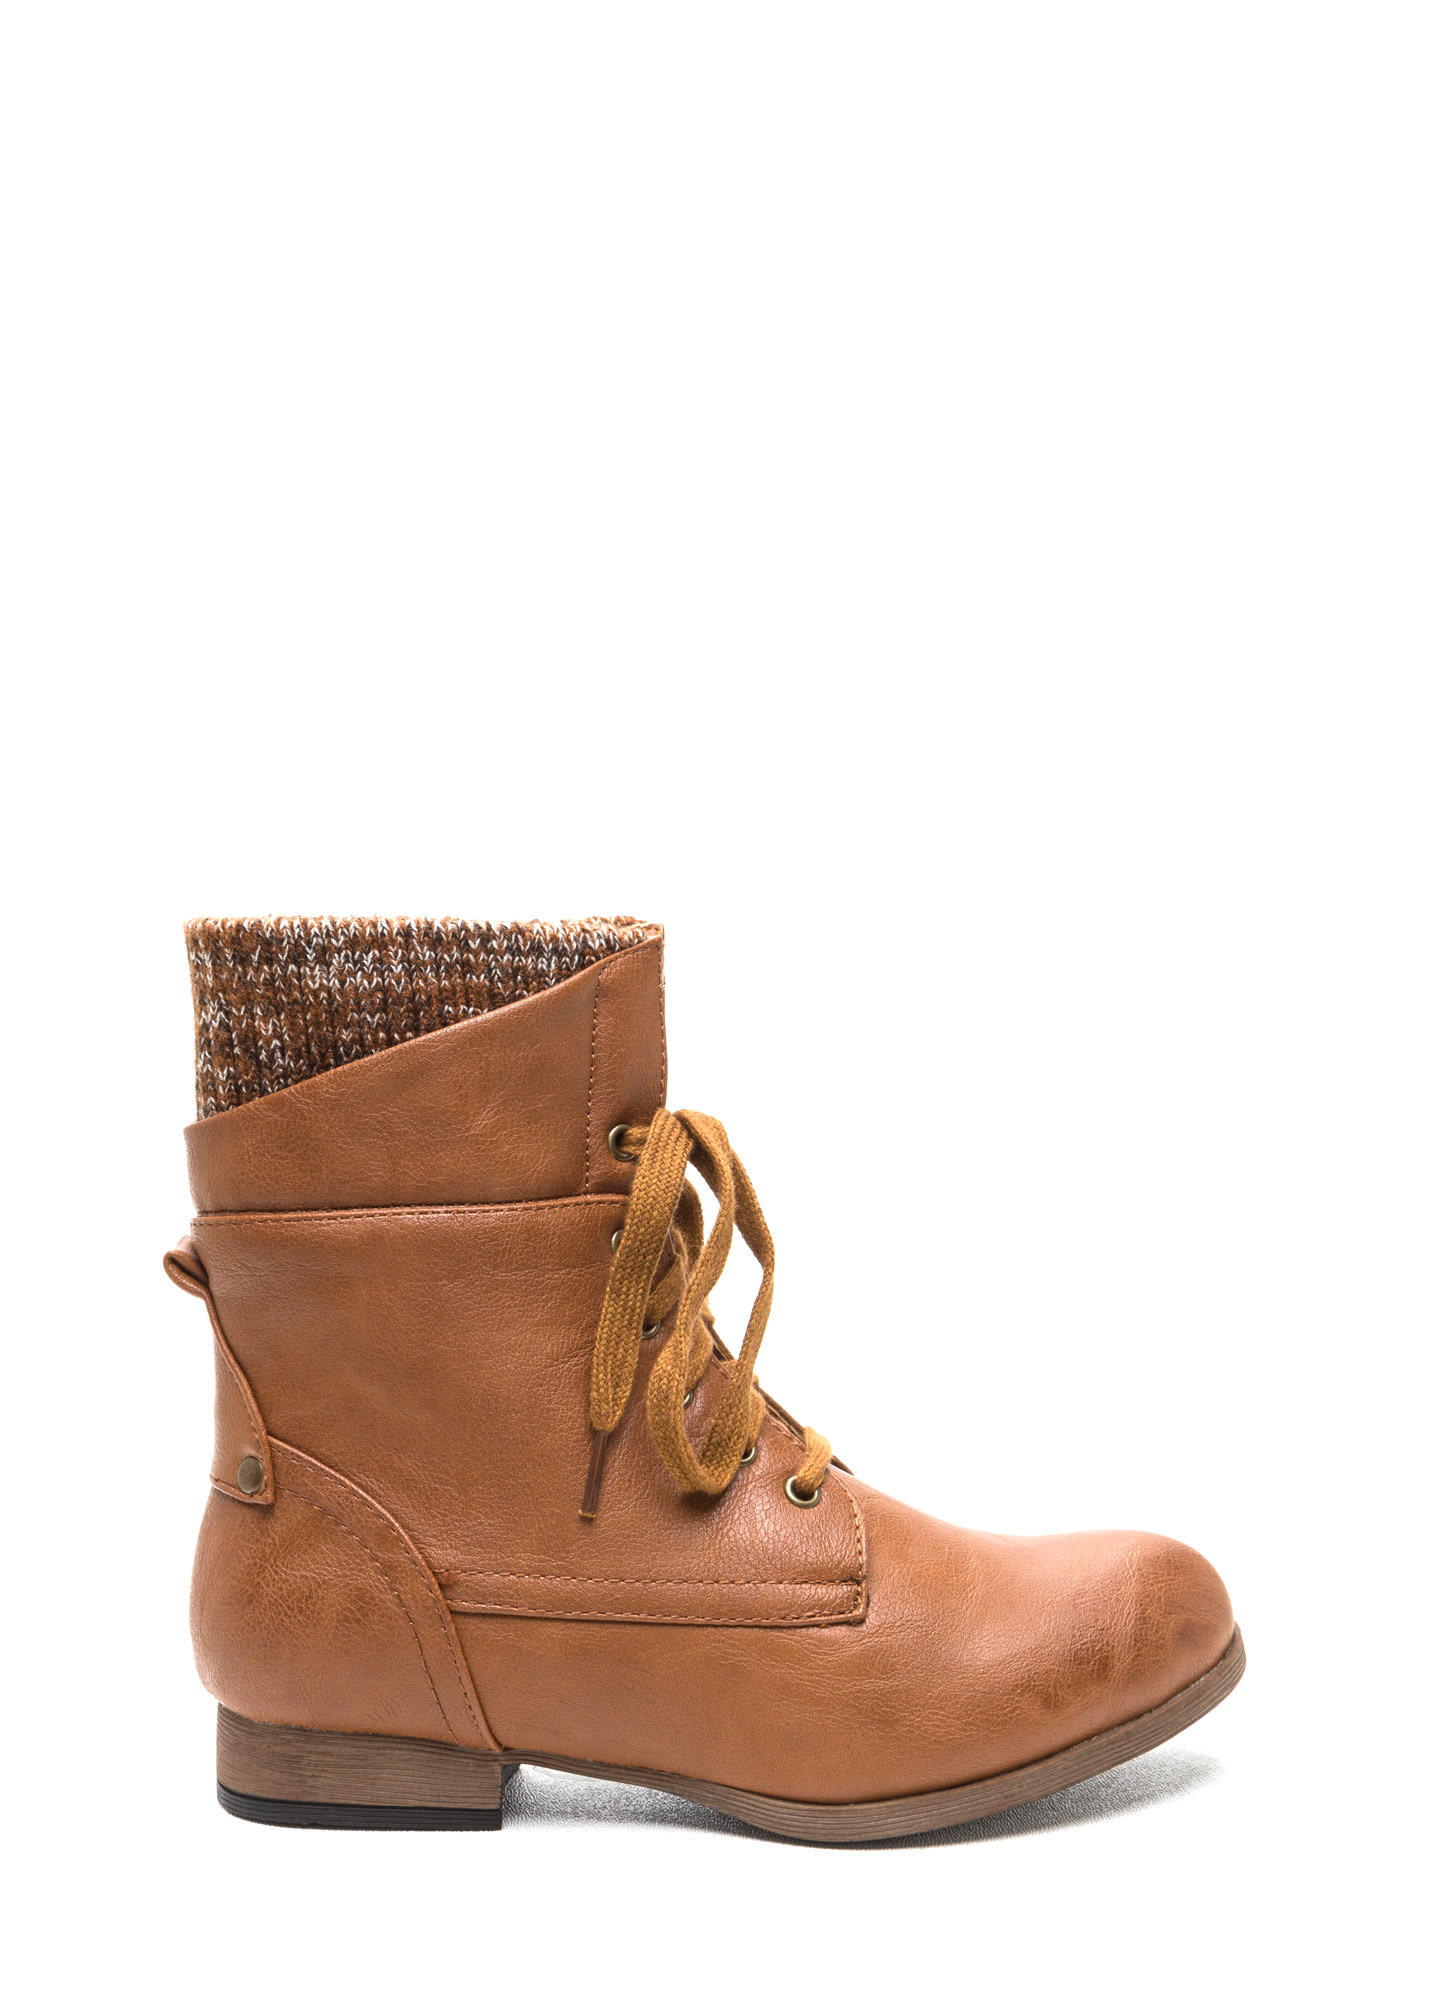 Sweater Weather Cuffed Lace-Up Boots COGNAC